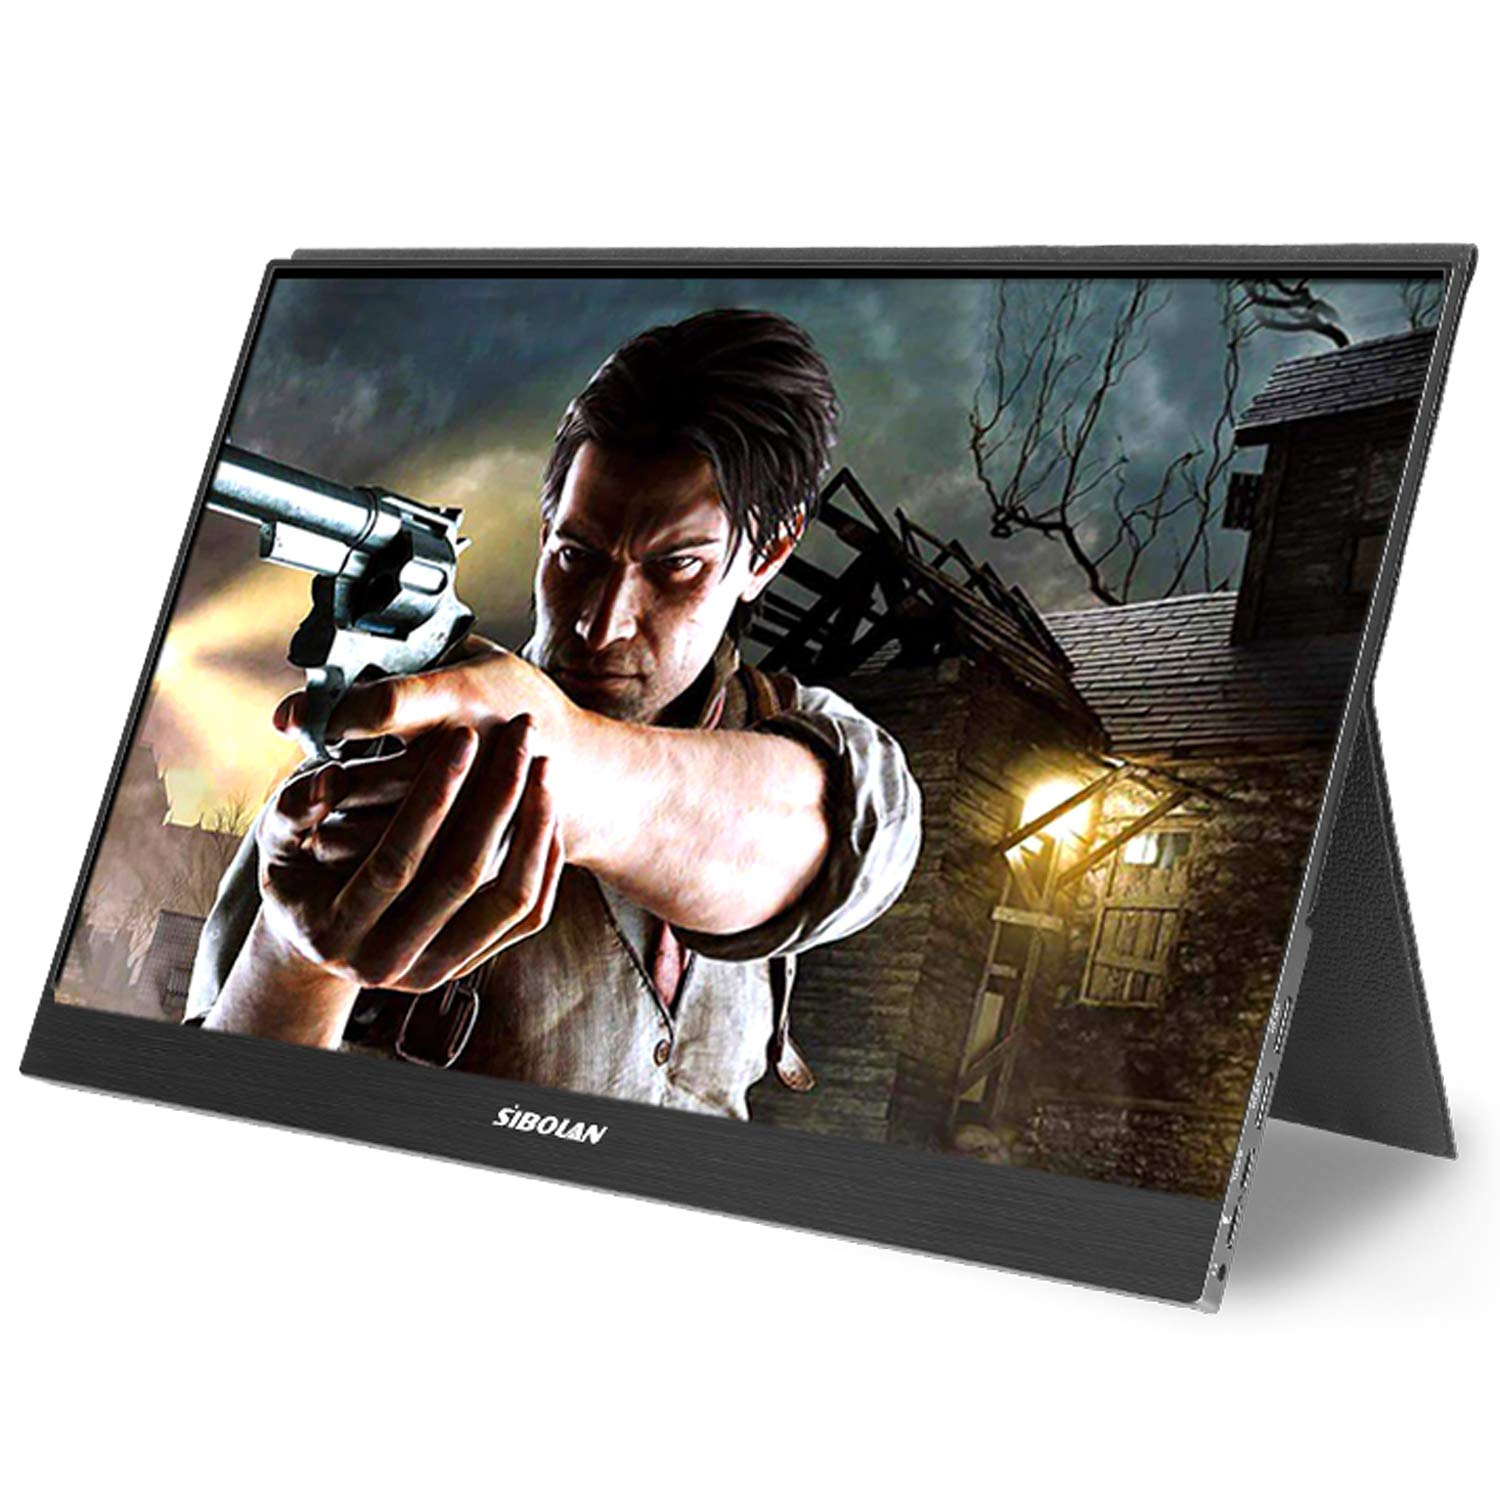 The Best 11 Portable Monitors (Reviewed December 2019) 1